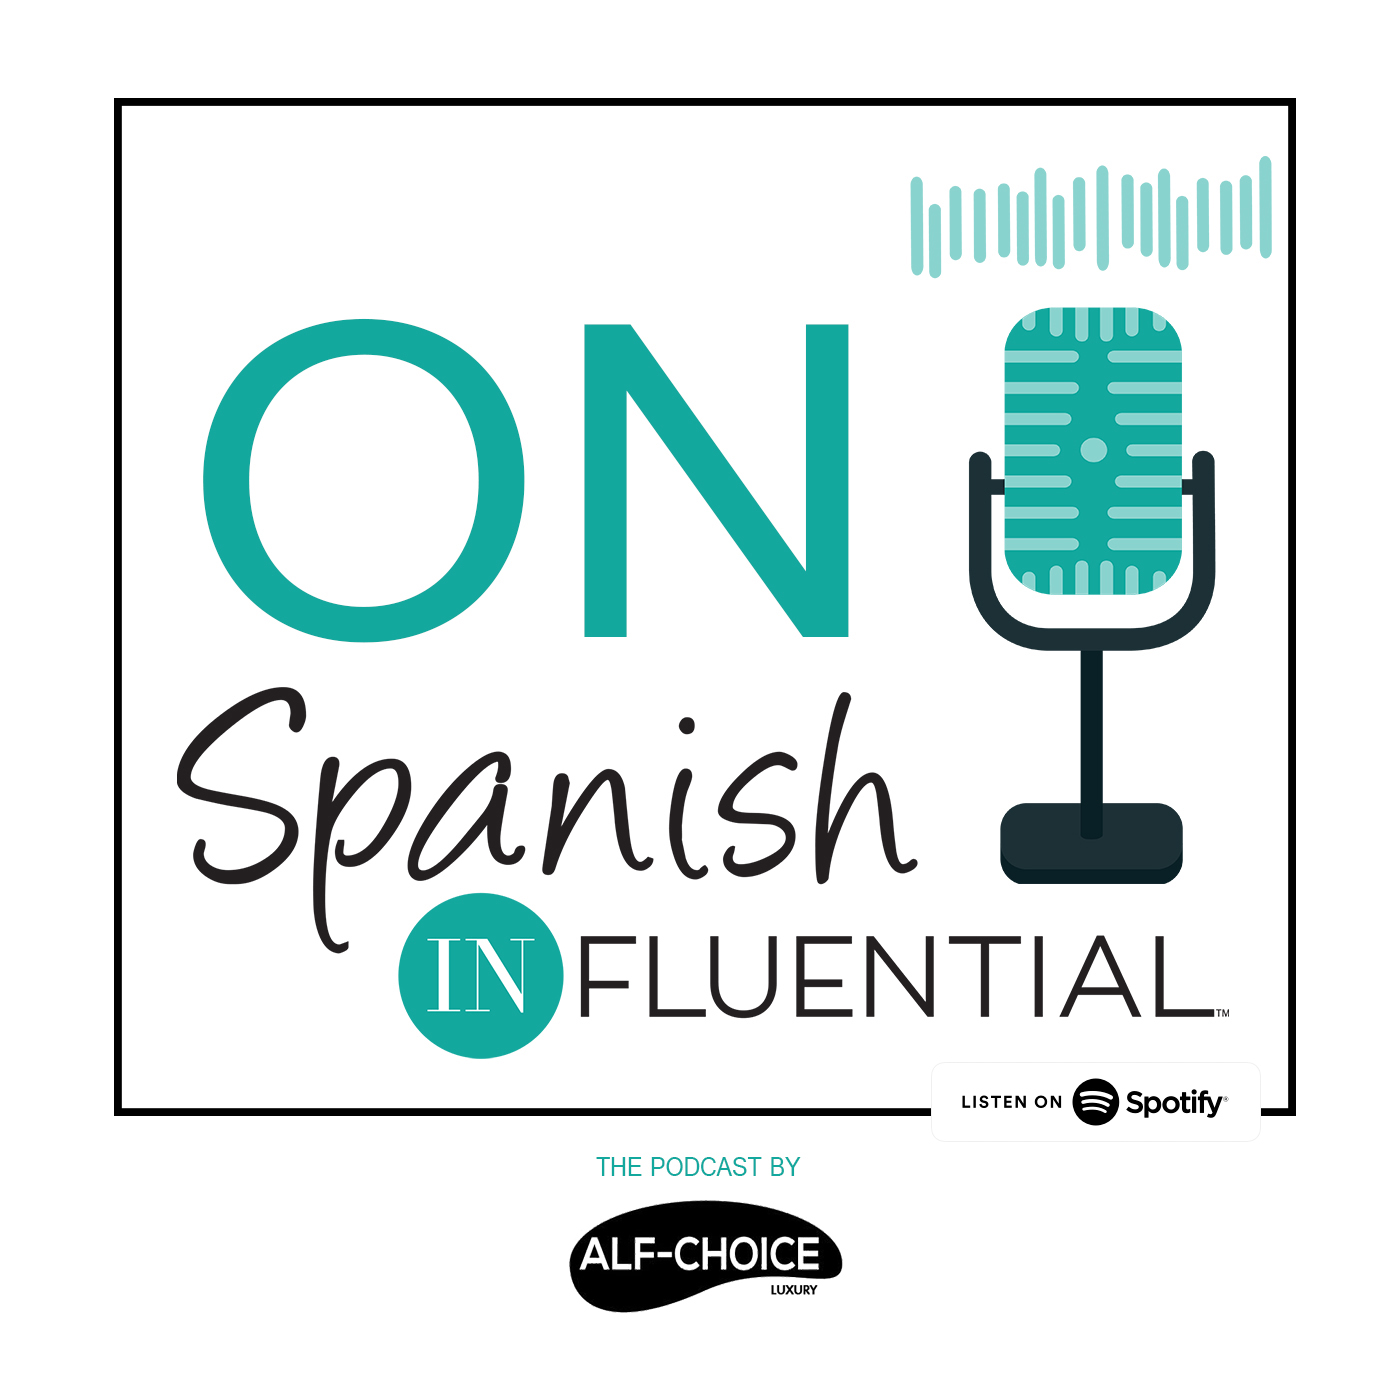 ON SPANISH INFLUENTIAL THE PODCAST BY ALF-CHOICE